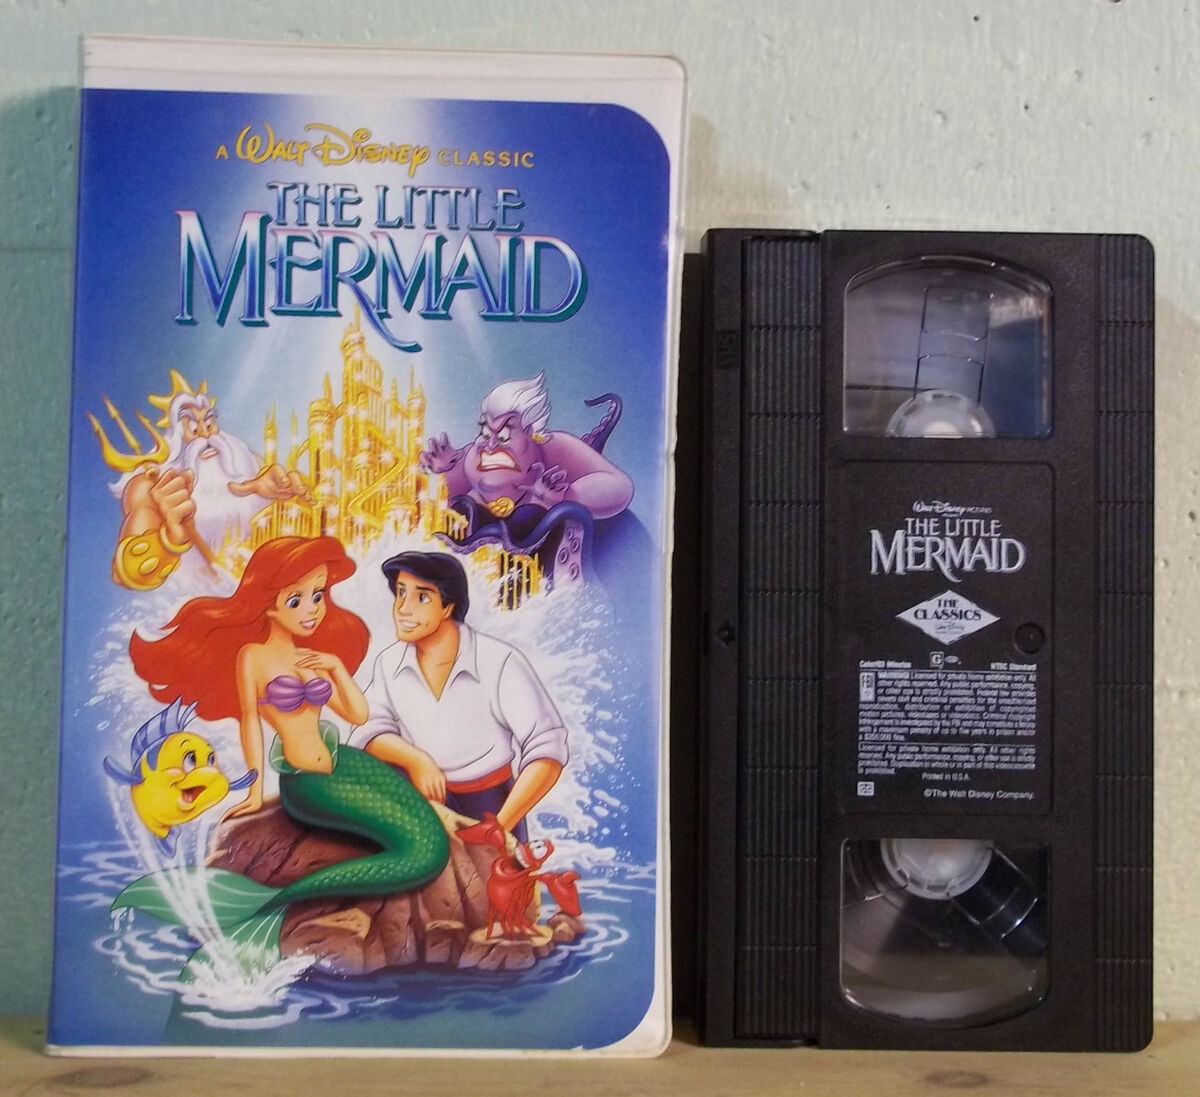 Walt Disney THE LITTLE MERMAID VHS #913 Clamshell Case Banned Phallic